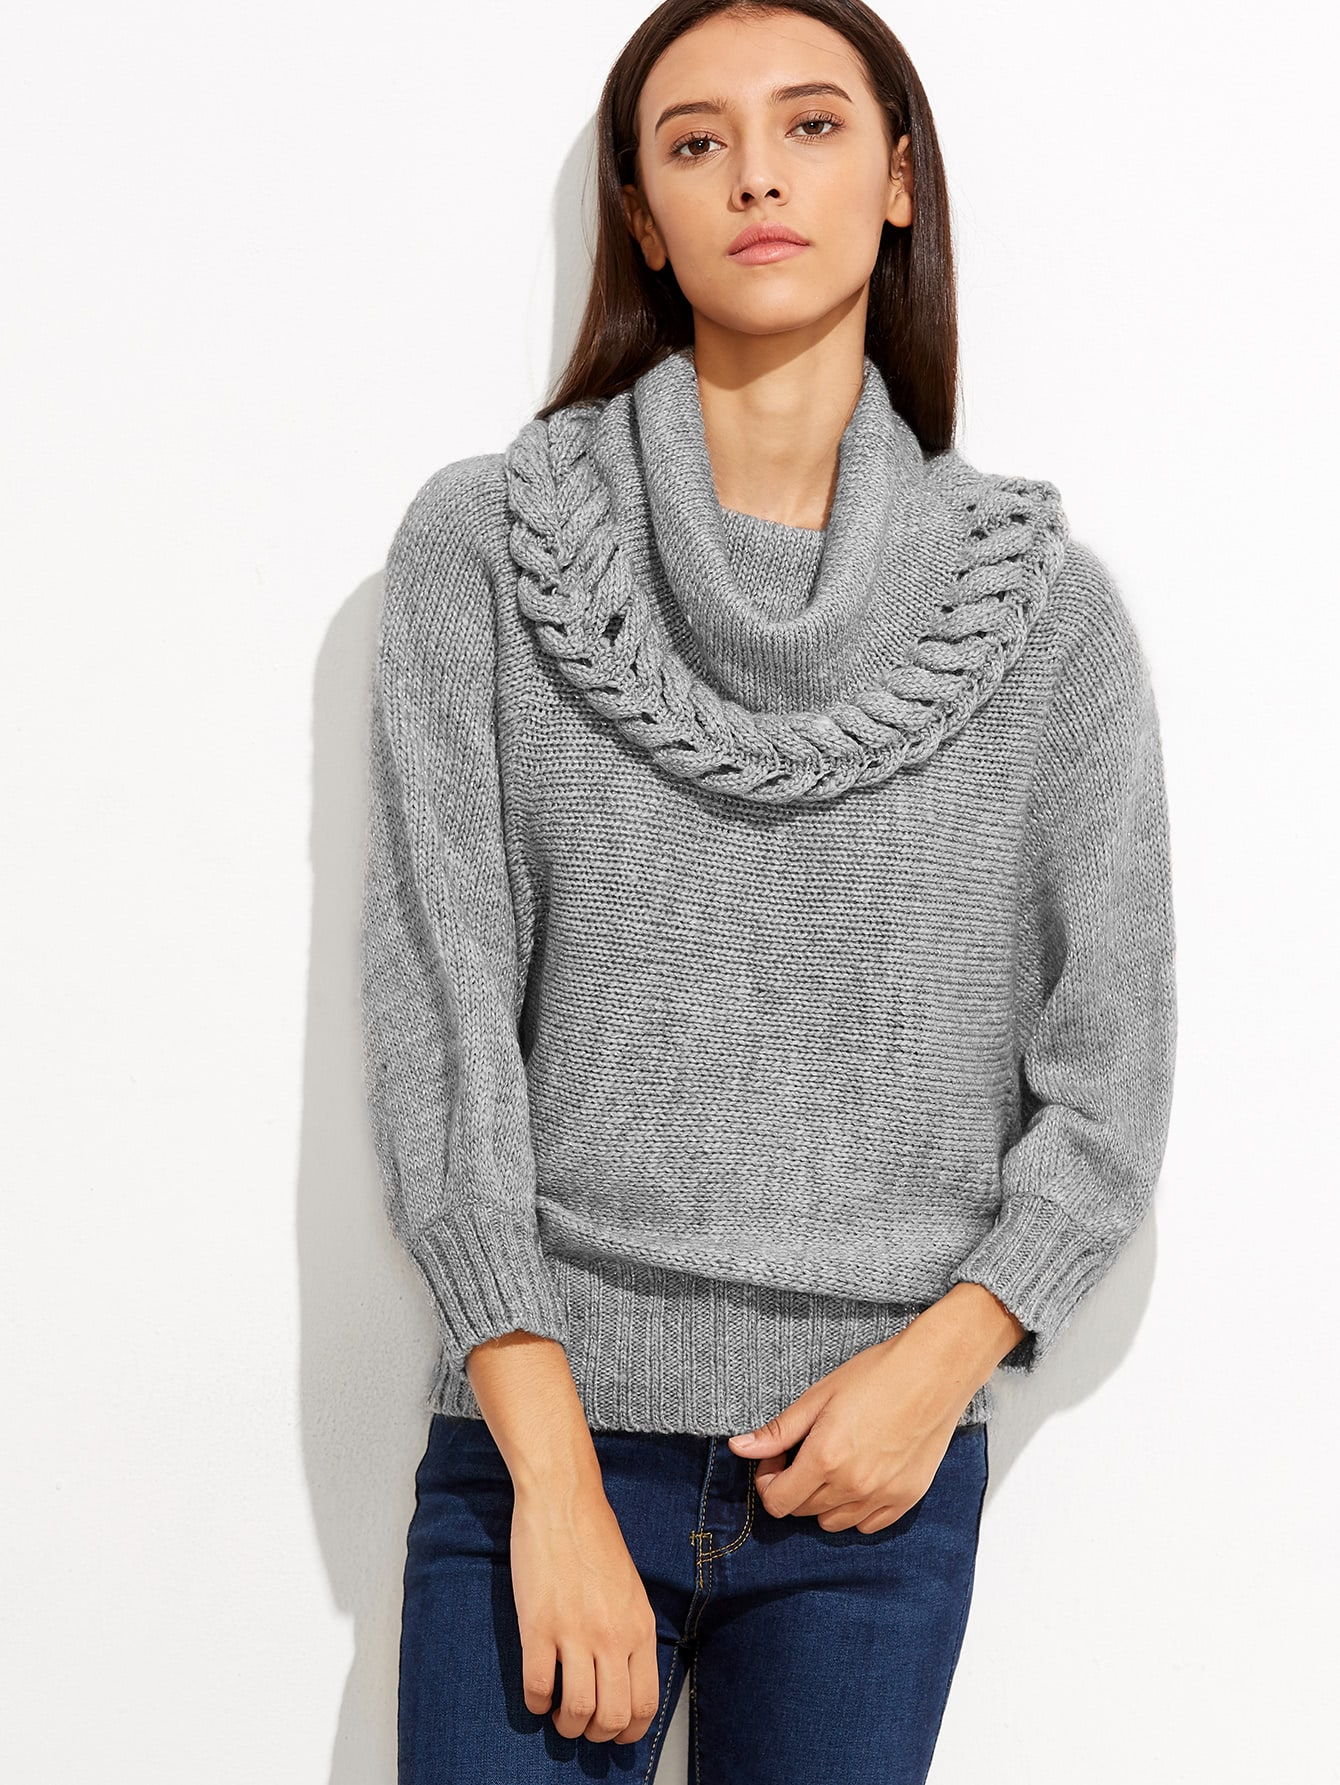 Grey Cowl Neck Ribbed Trim Loose Sweater sweater160915458